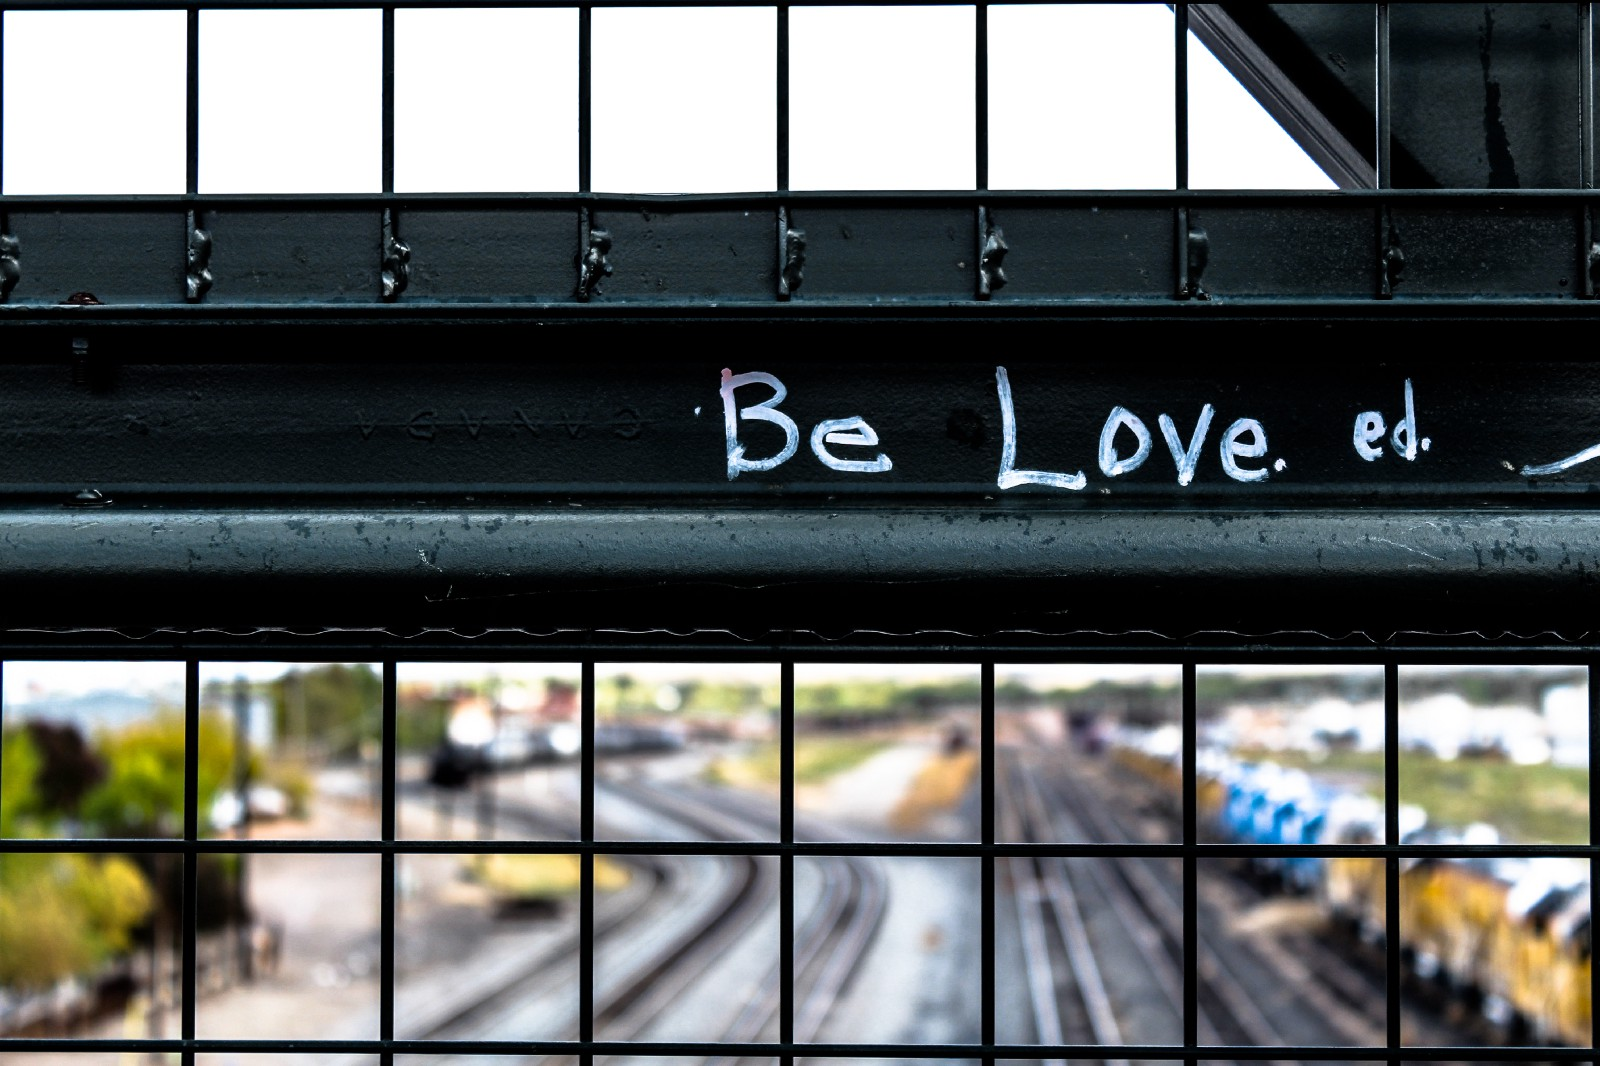 """black metal grill with be love ed text"" by  Elijah Macleod  on  Unsplash"